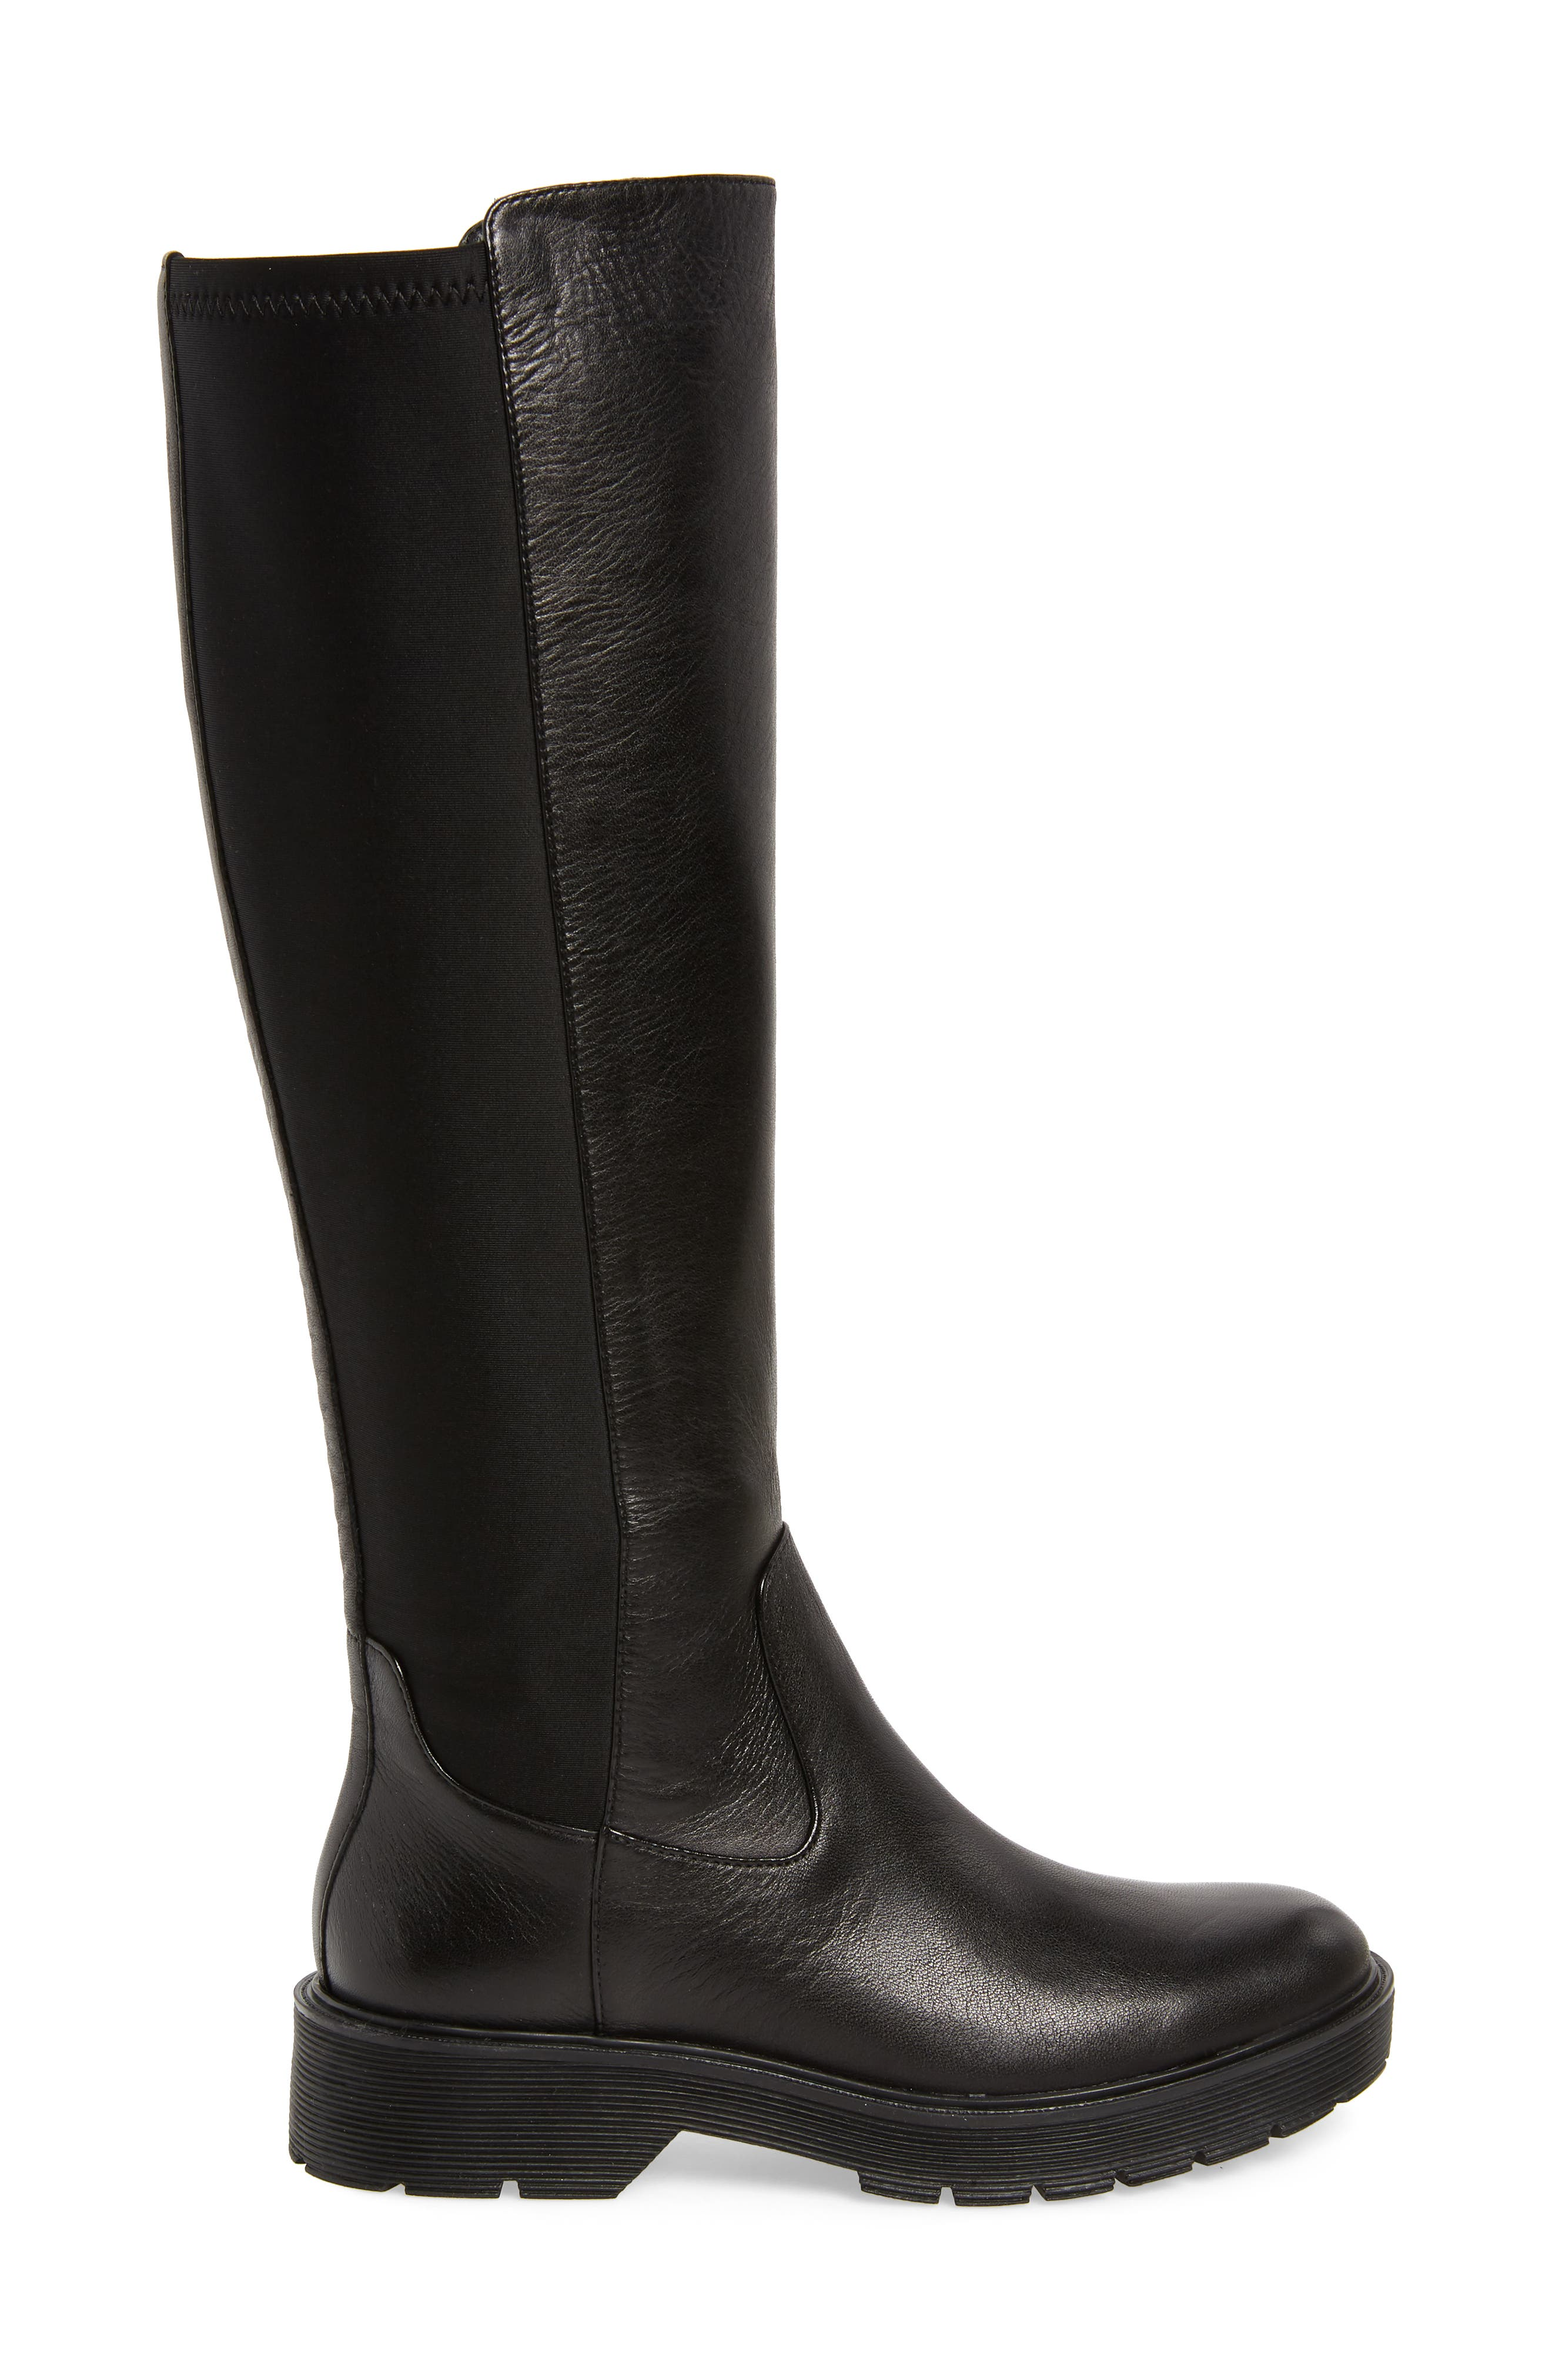 CALVIN KLEIN,                             Themis Knee High Riding Boot,                             Alternate thumbnail 3, color,                             BLACK LEATHER